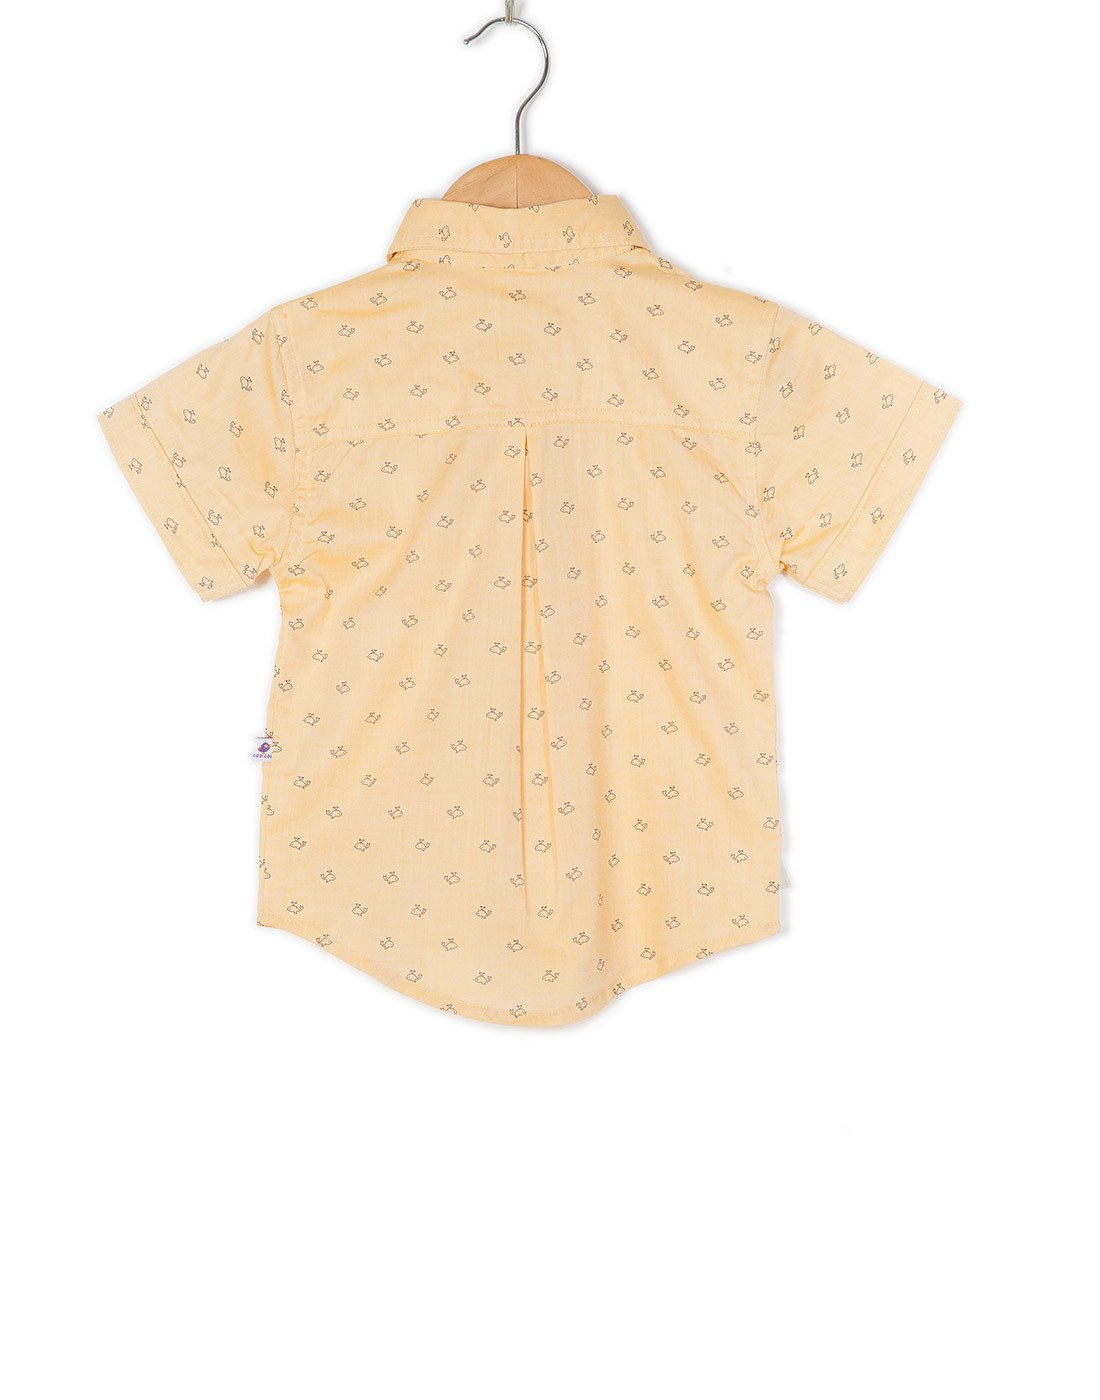 COO COO 'The Parth' Whale Printed Half Sleeve Shirt - Mustard Yellow